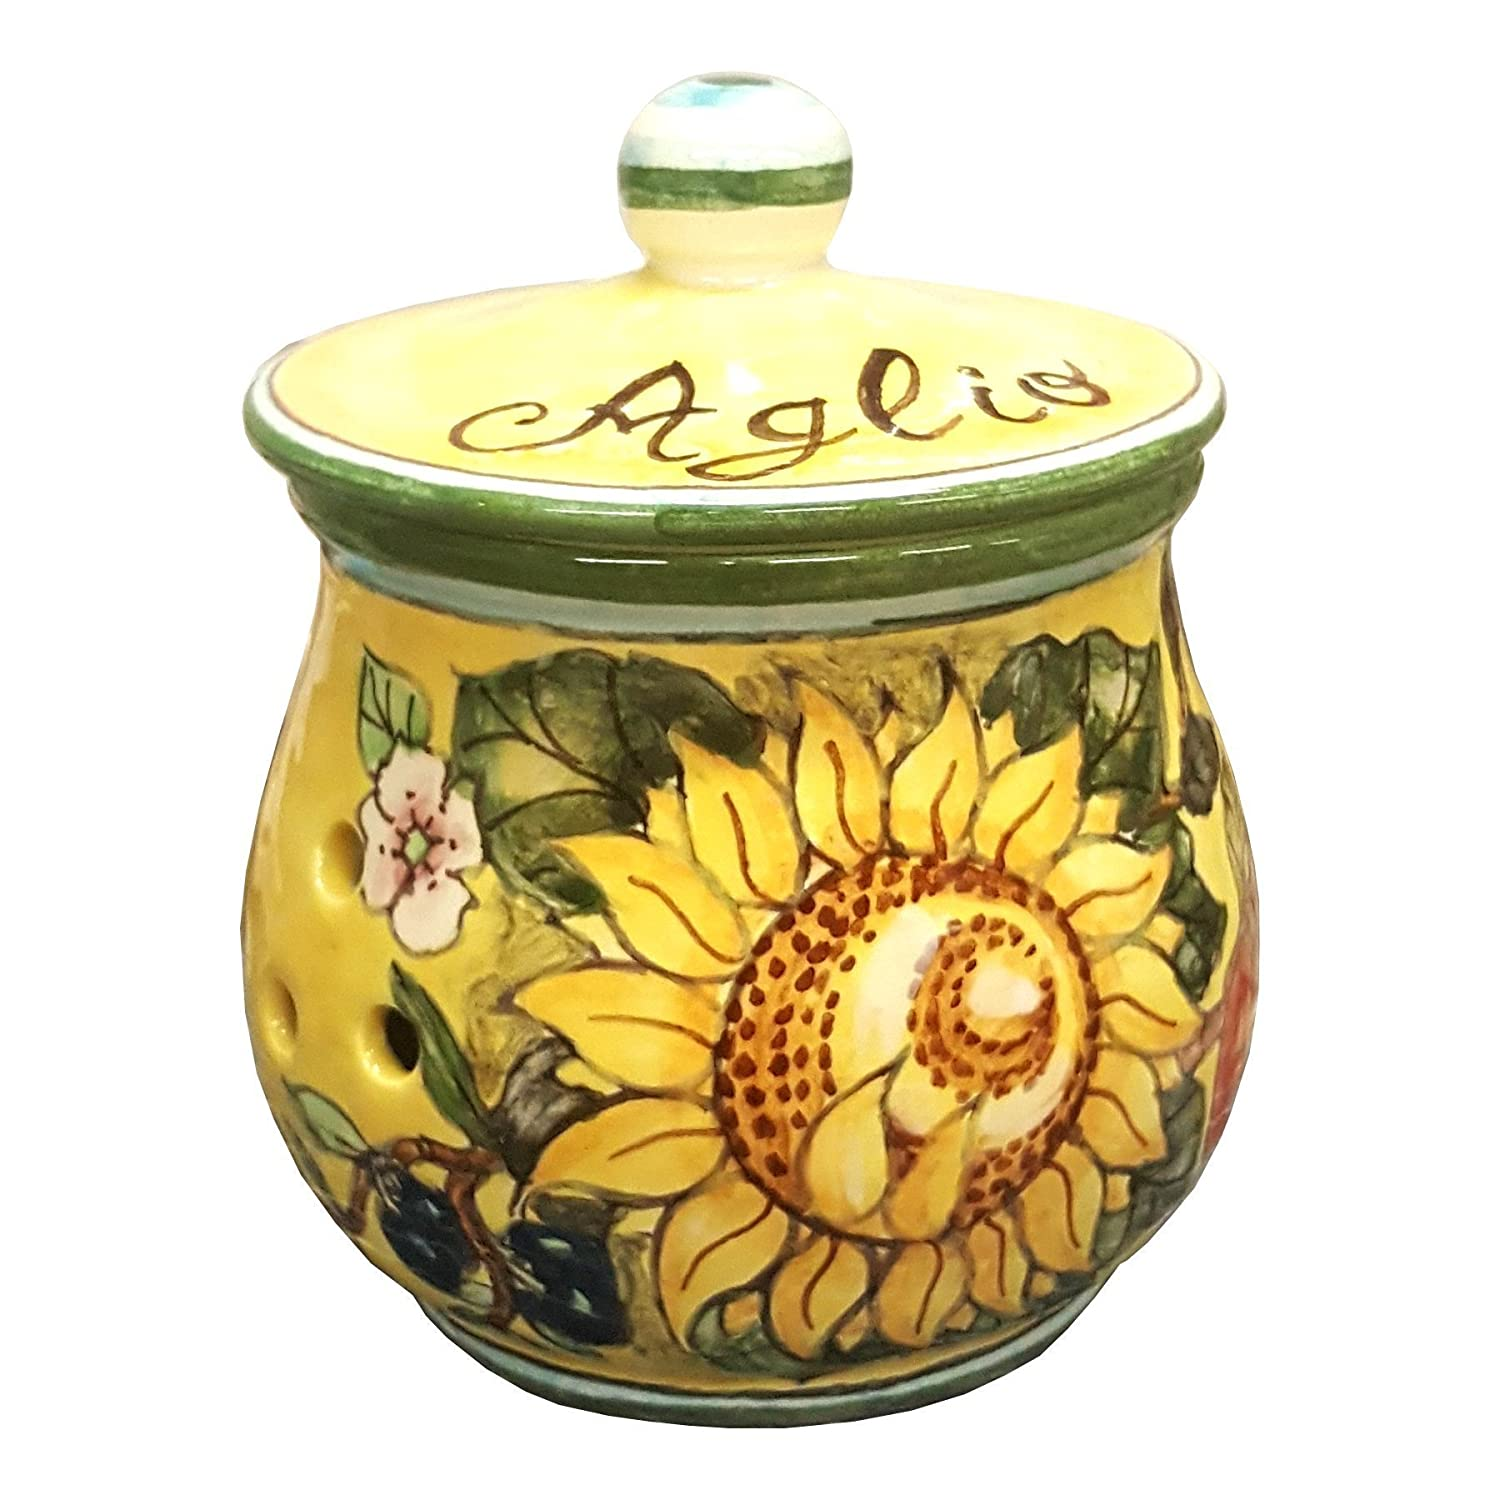 Amazon made in italy handmade products ceramiche darte parrini italian ceramic brings garlic jar holder hand painted decorated sunflower dailygadgetfo Images